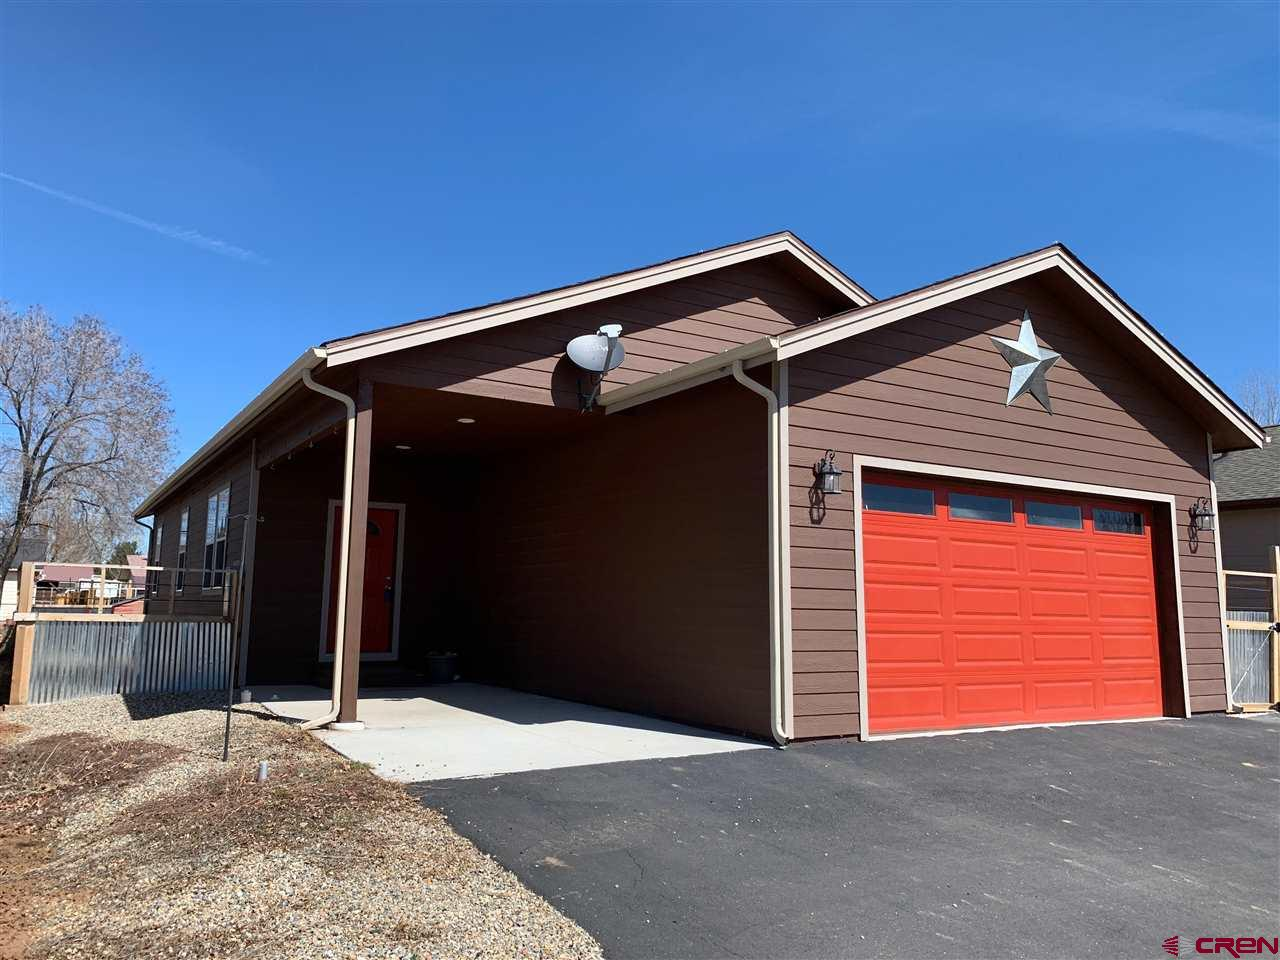 MLS# 767638 - 1 - 515 Tranquilo Court, Ignacio, CO 81137